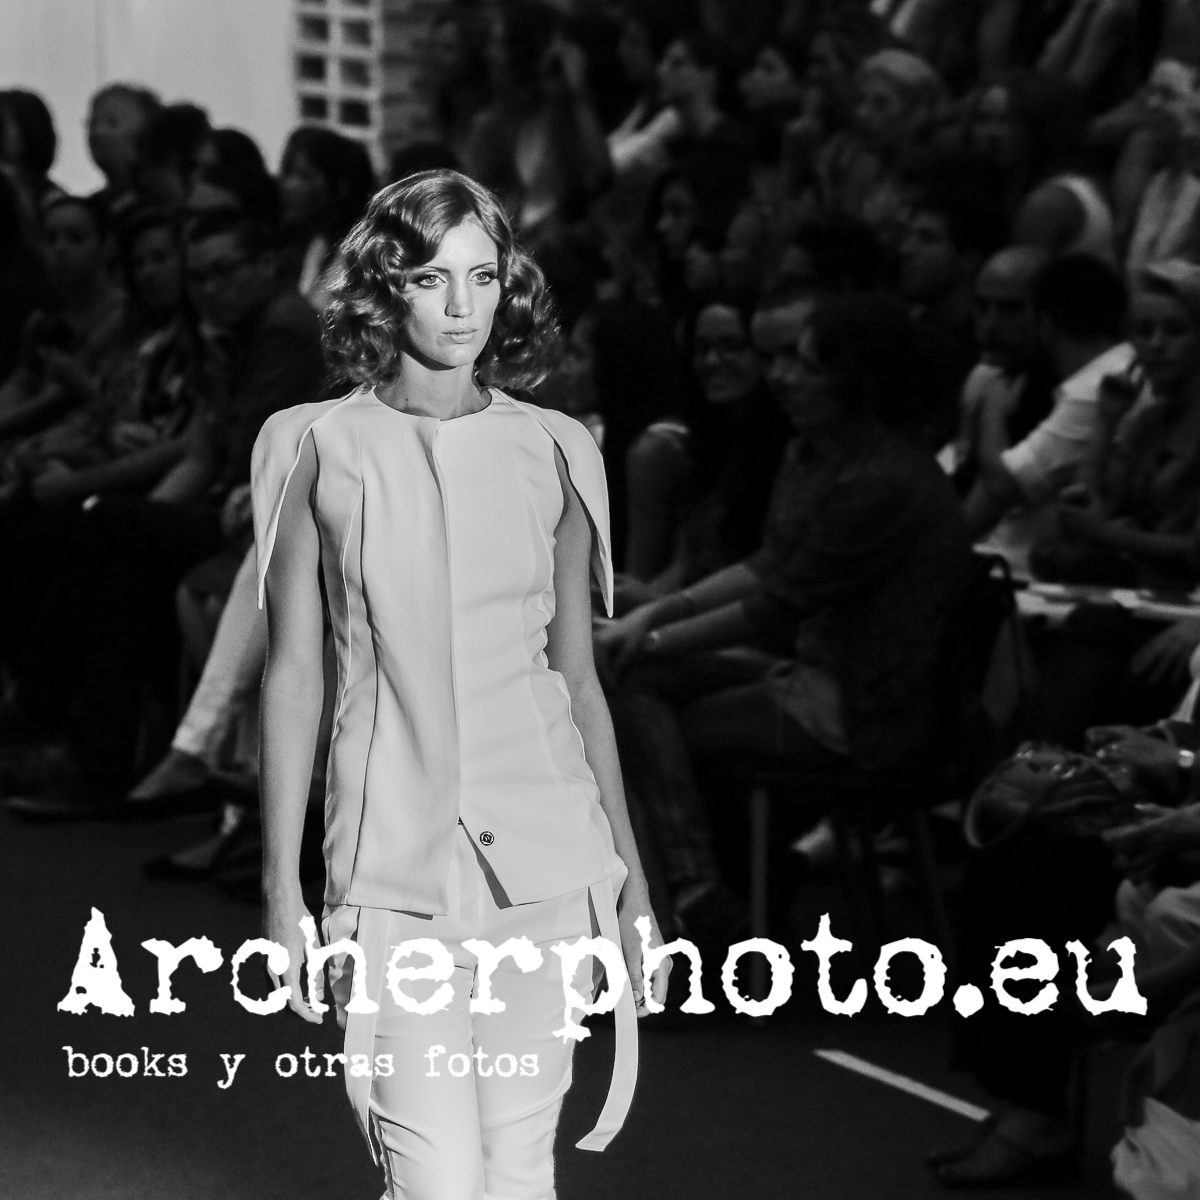 Luisina Coral in Moisés Castañeyra Valencia Fashion Week, February 13th 2012 by Archerphoto professional photographer